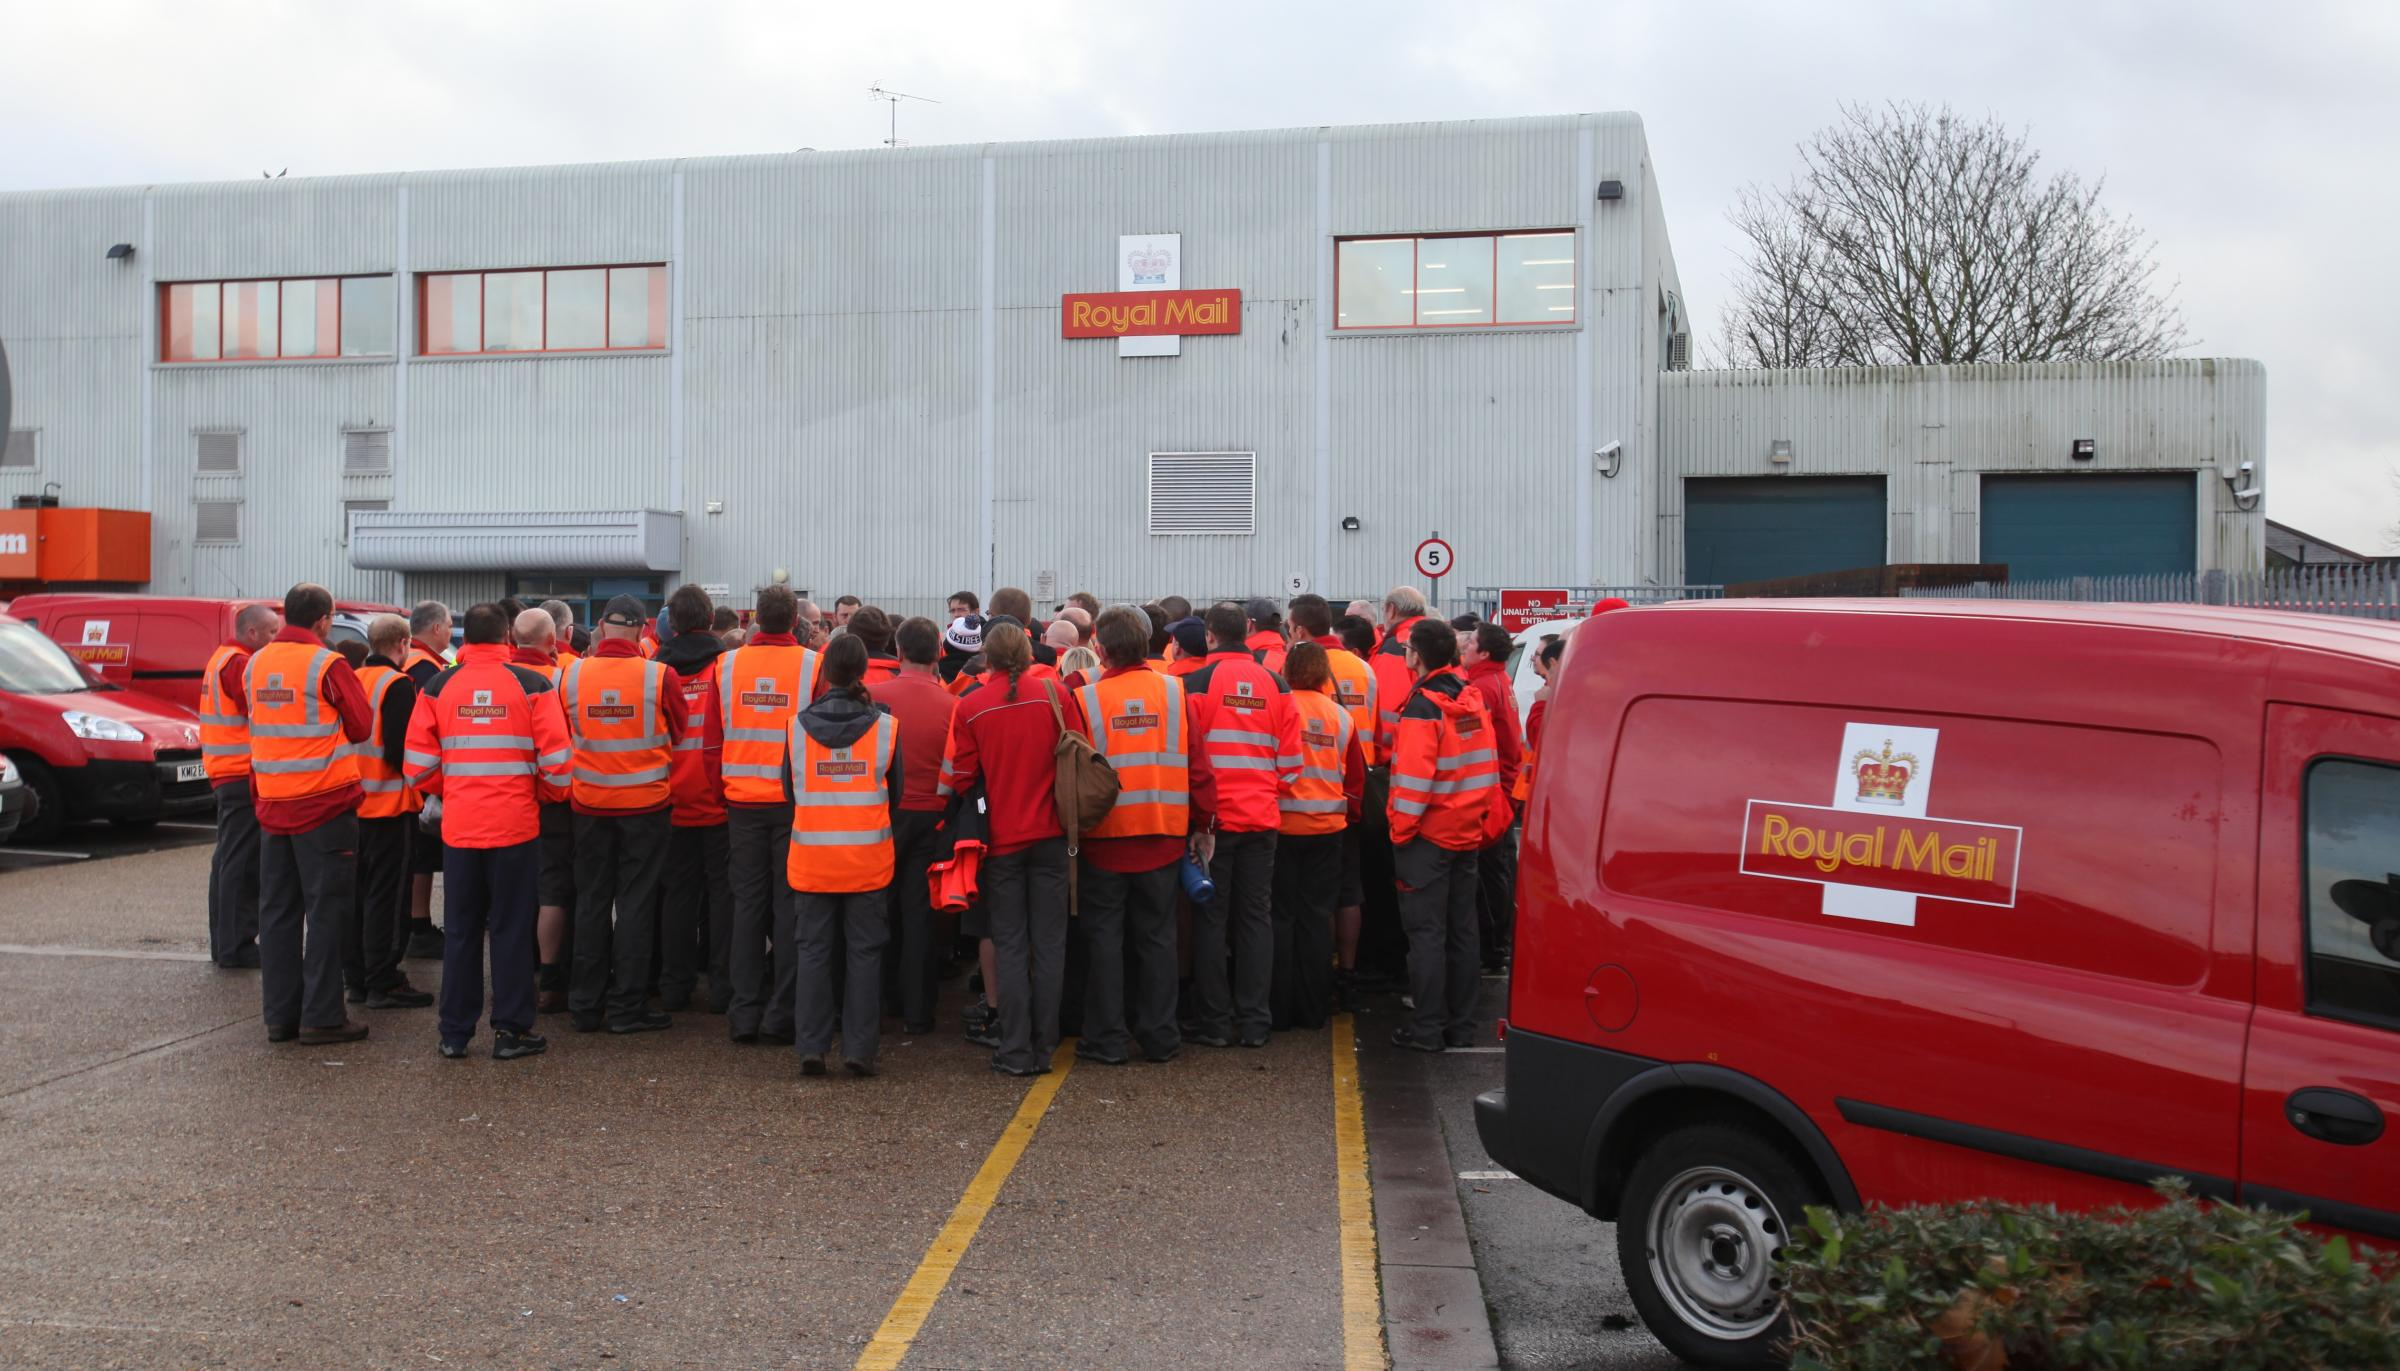 Southampton postal workers walk out after postman is suspended